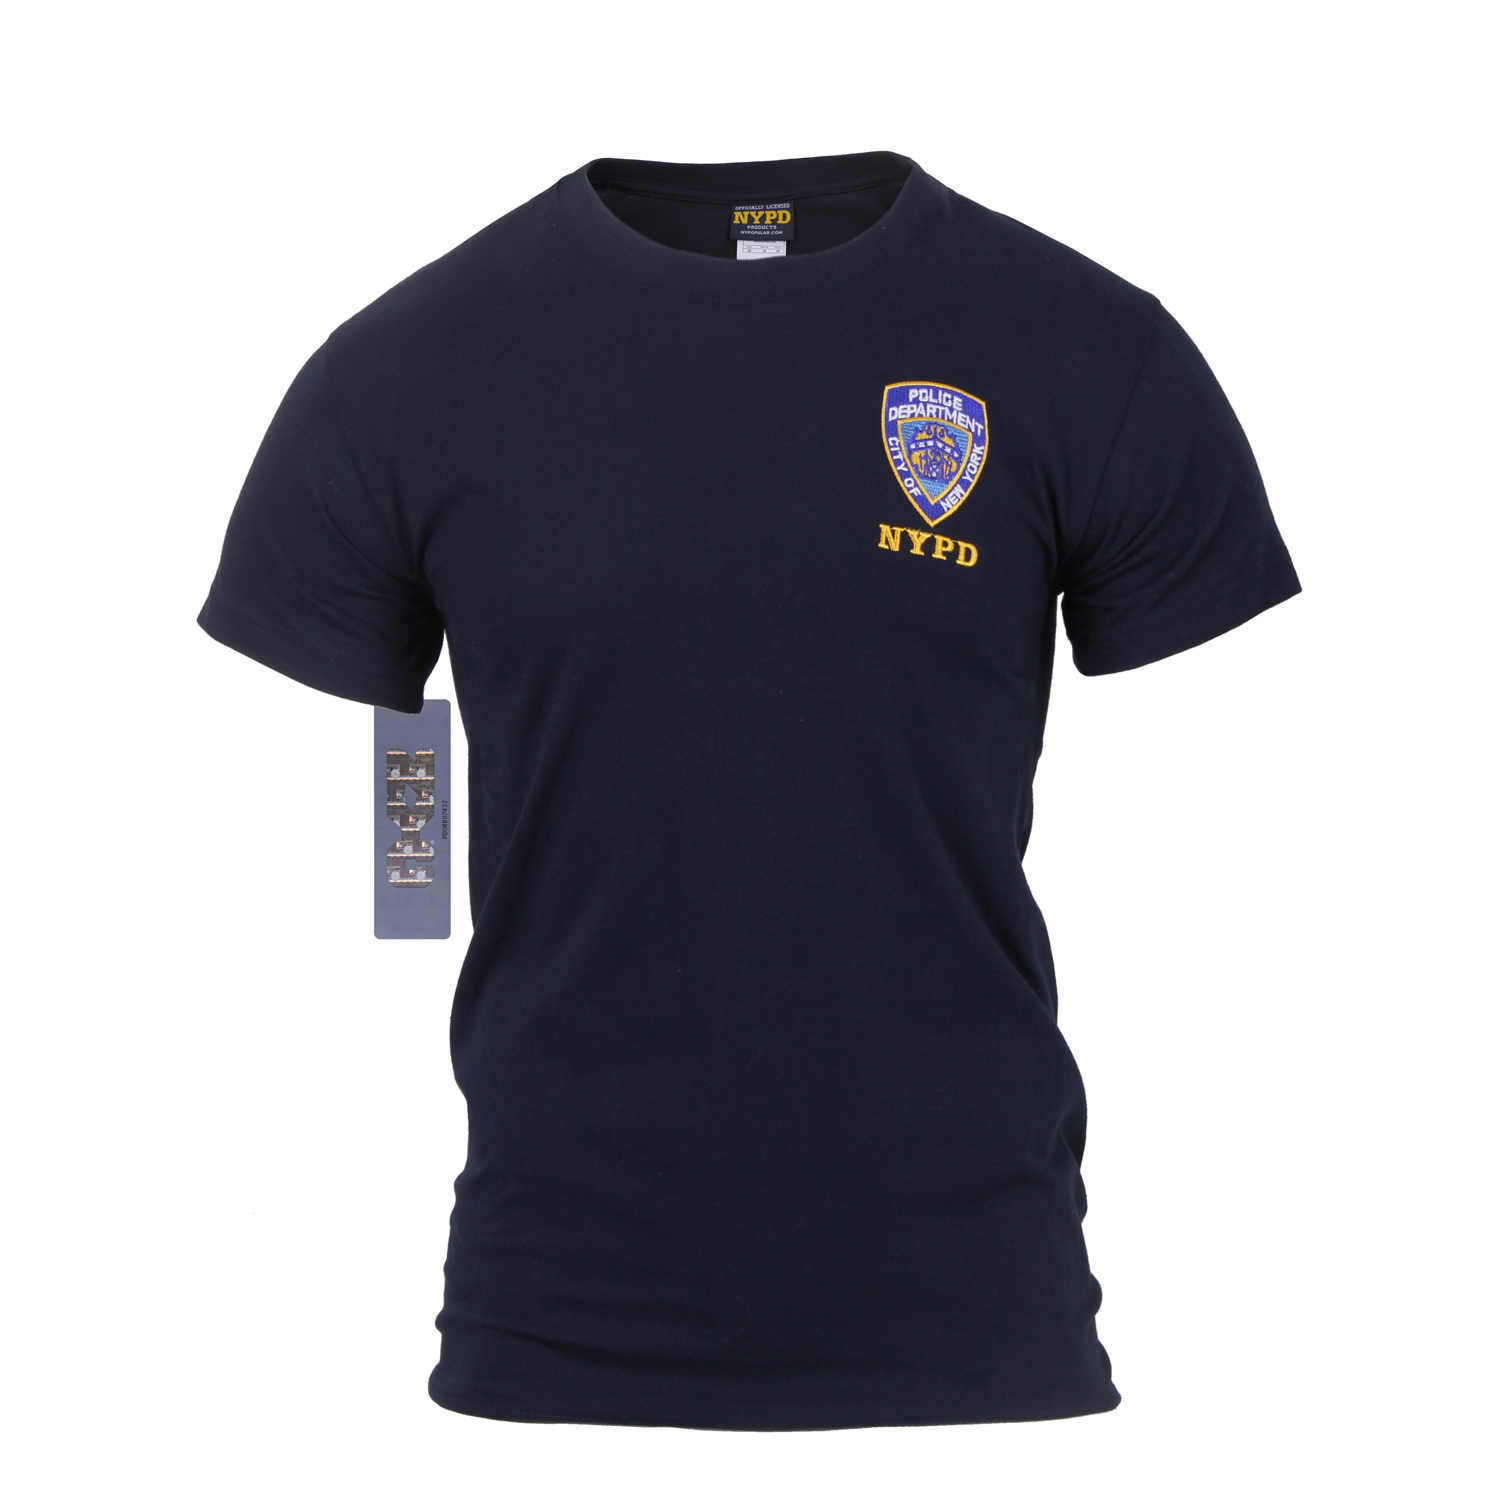 0455642fc Officially Licensed NYPD Emblem T-shirt